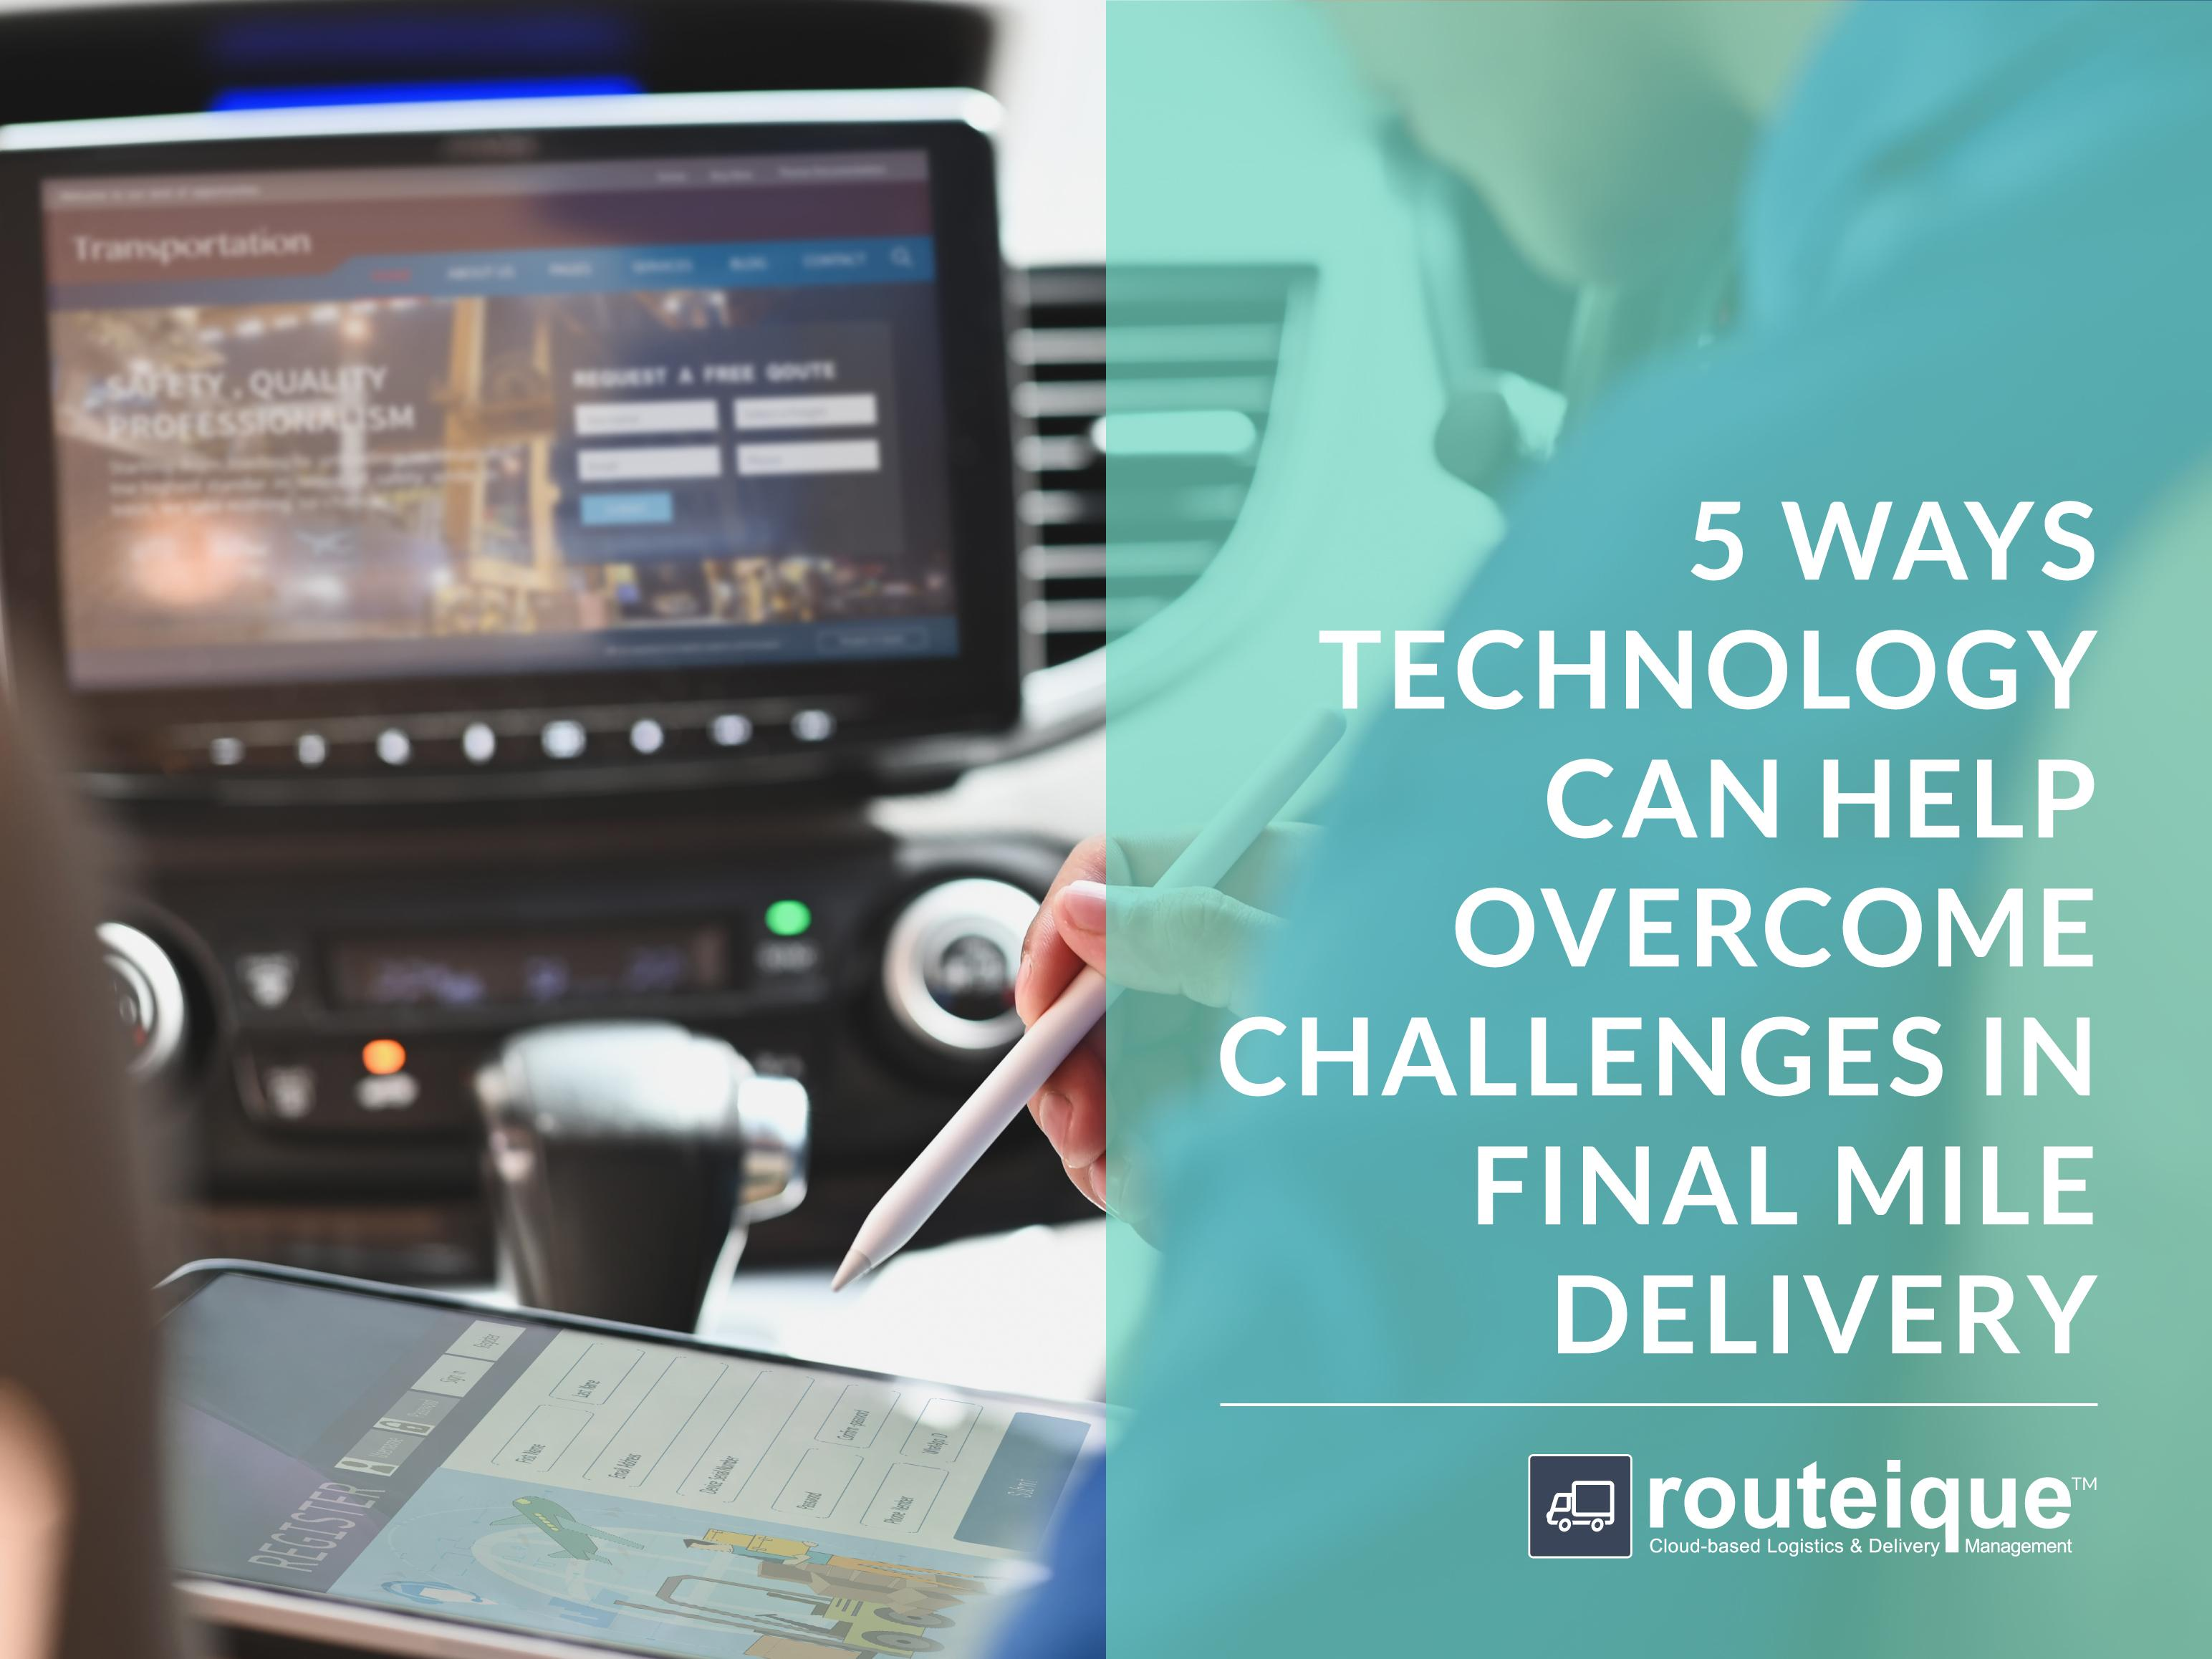 5 Ways Technology Can Help Overcome Challenges in Final Mile Delivery